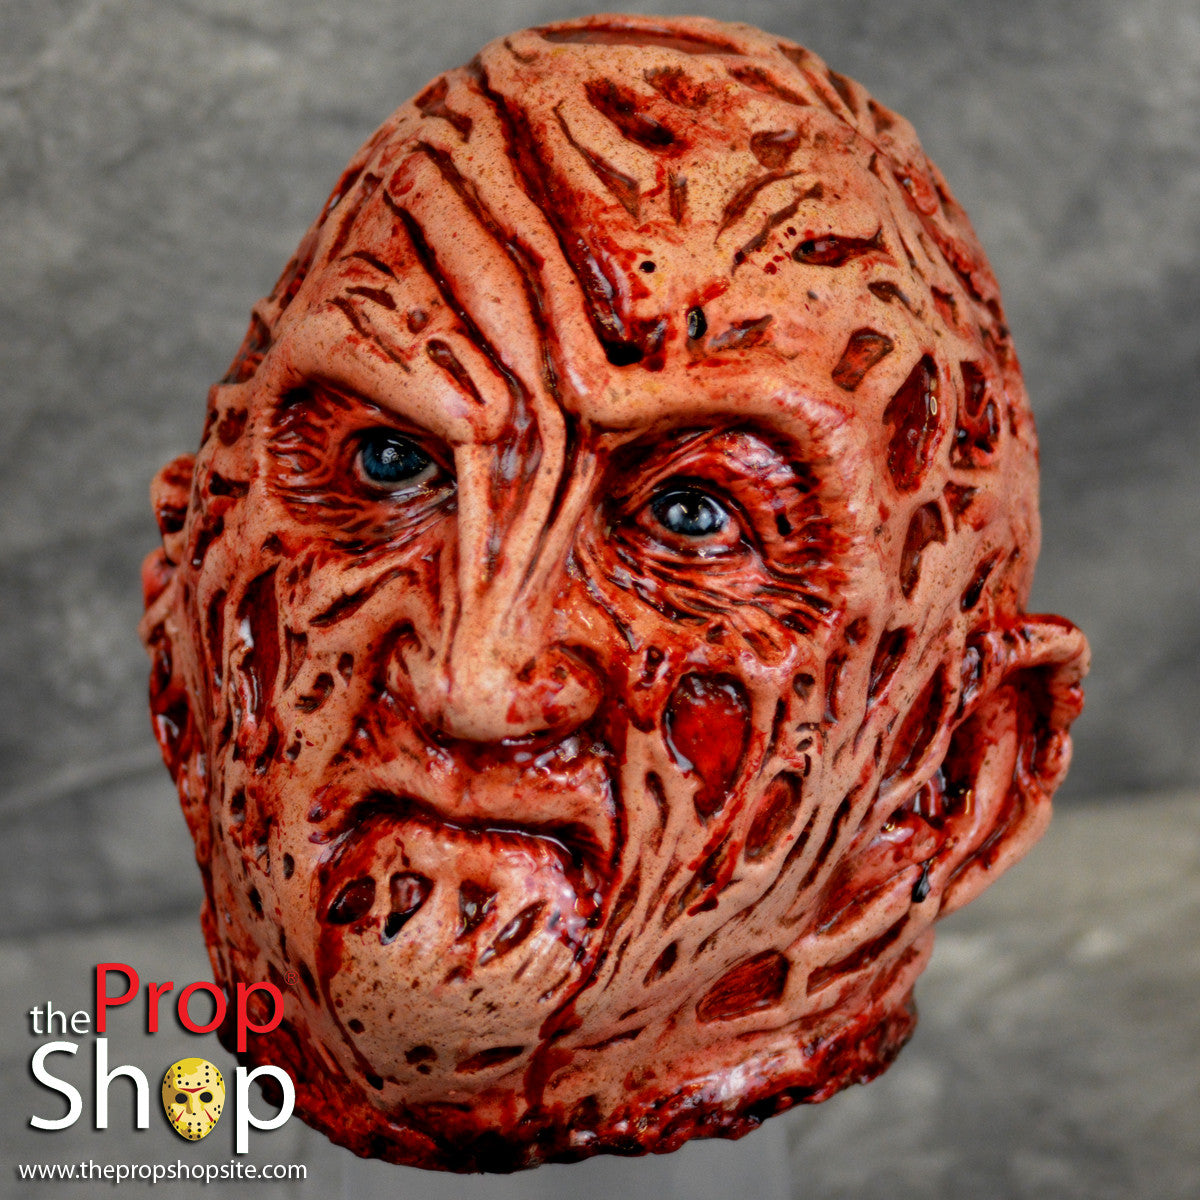 Nightmare Mask Severed Head